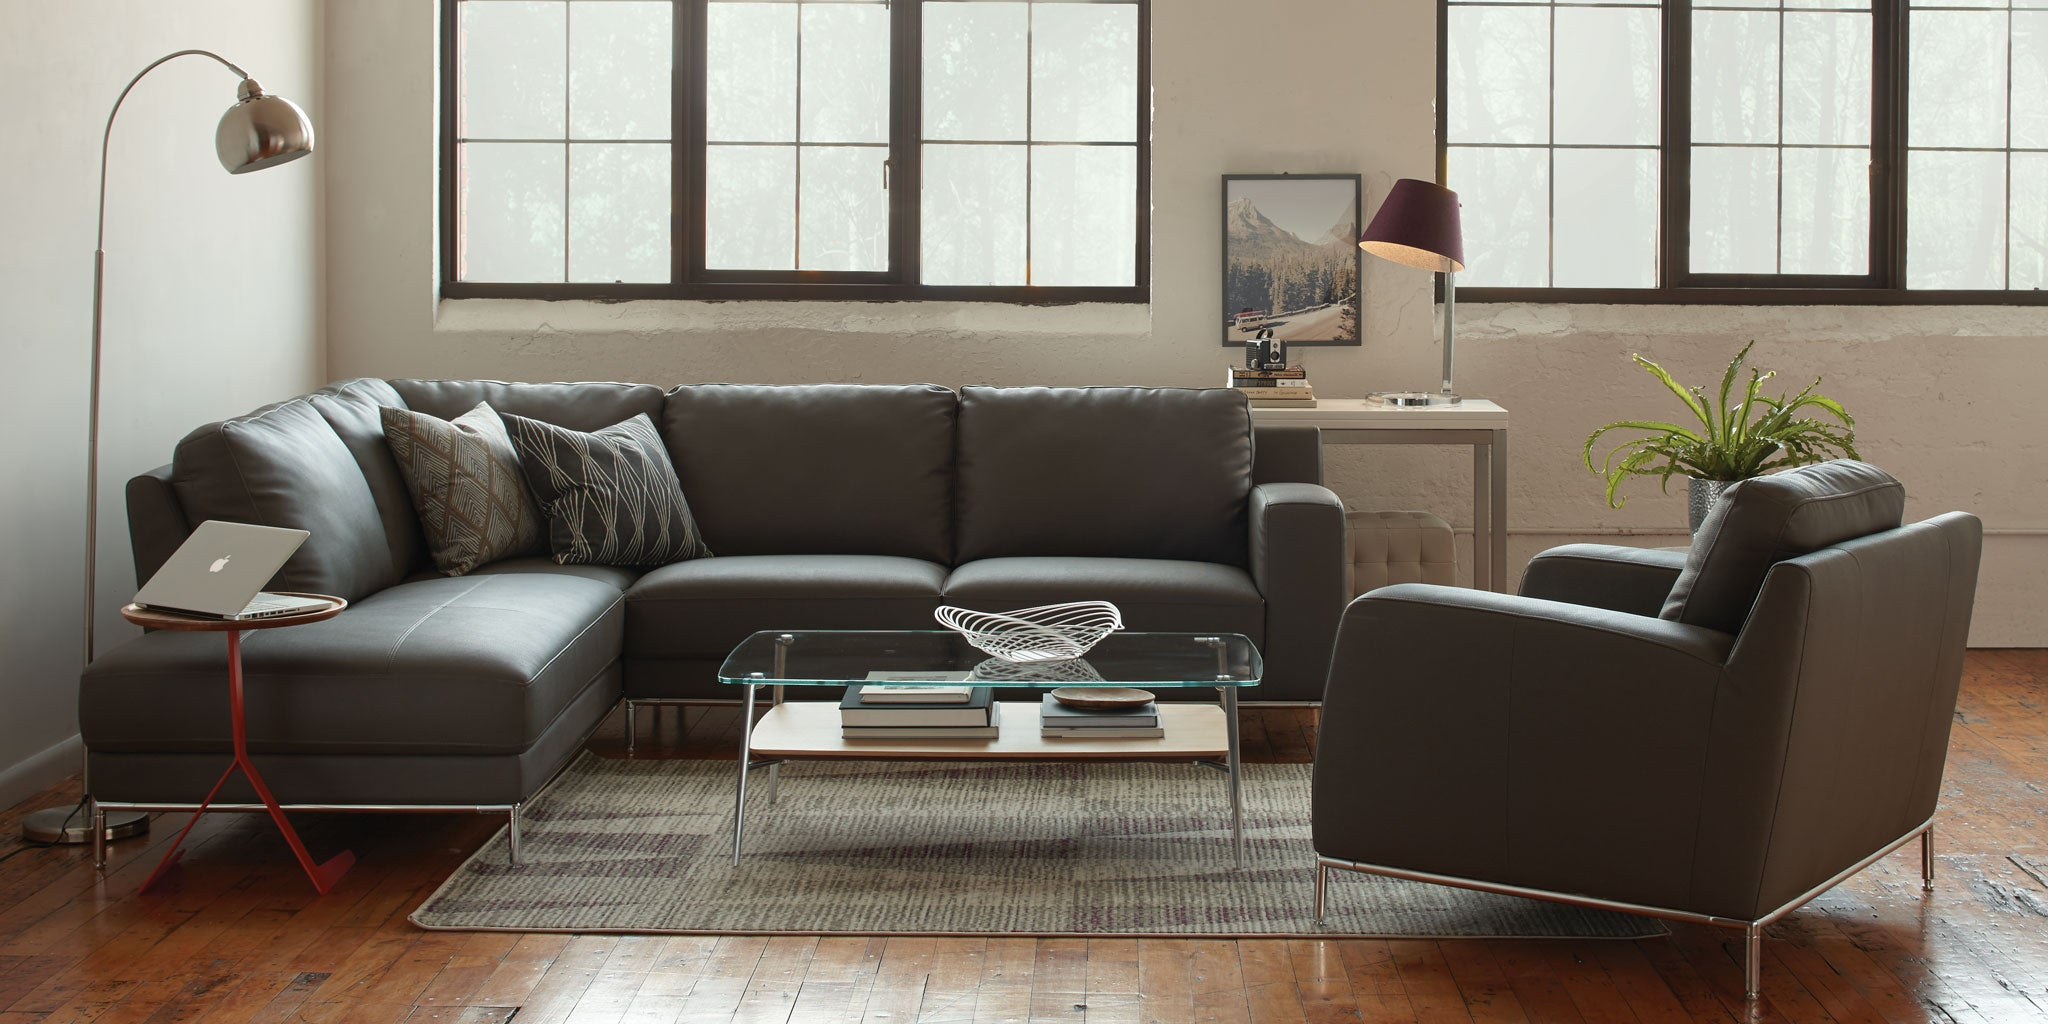 Soho. Soho Sectional : soho sectional - Sectionals, Sofas & Couches